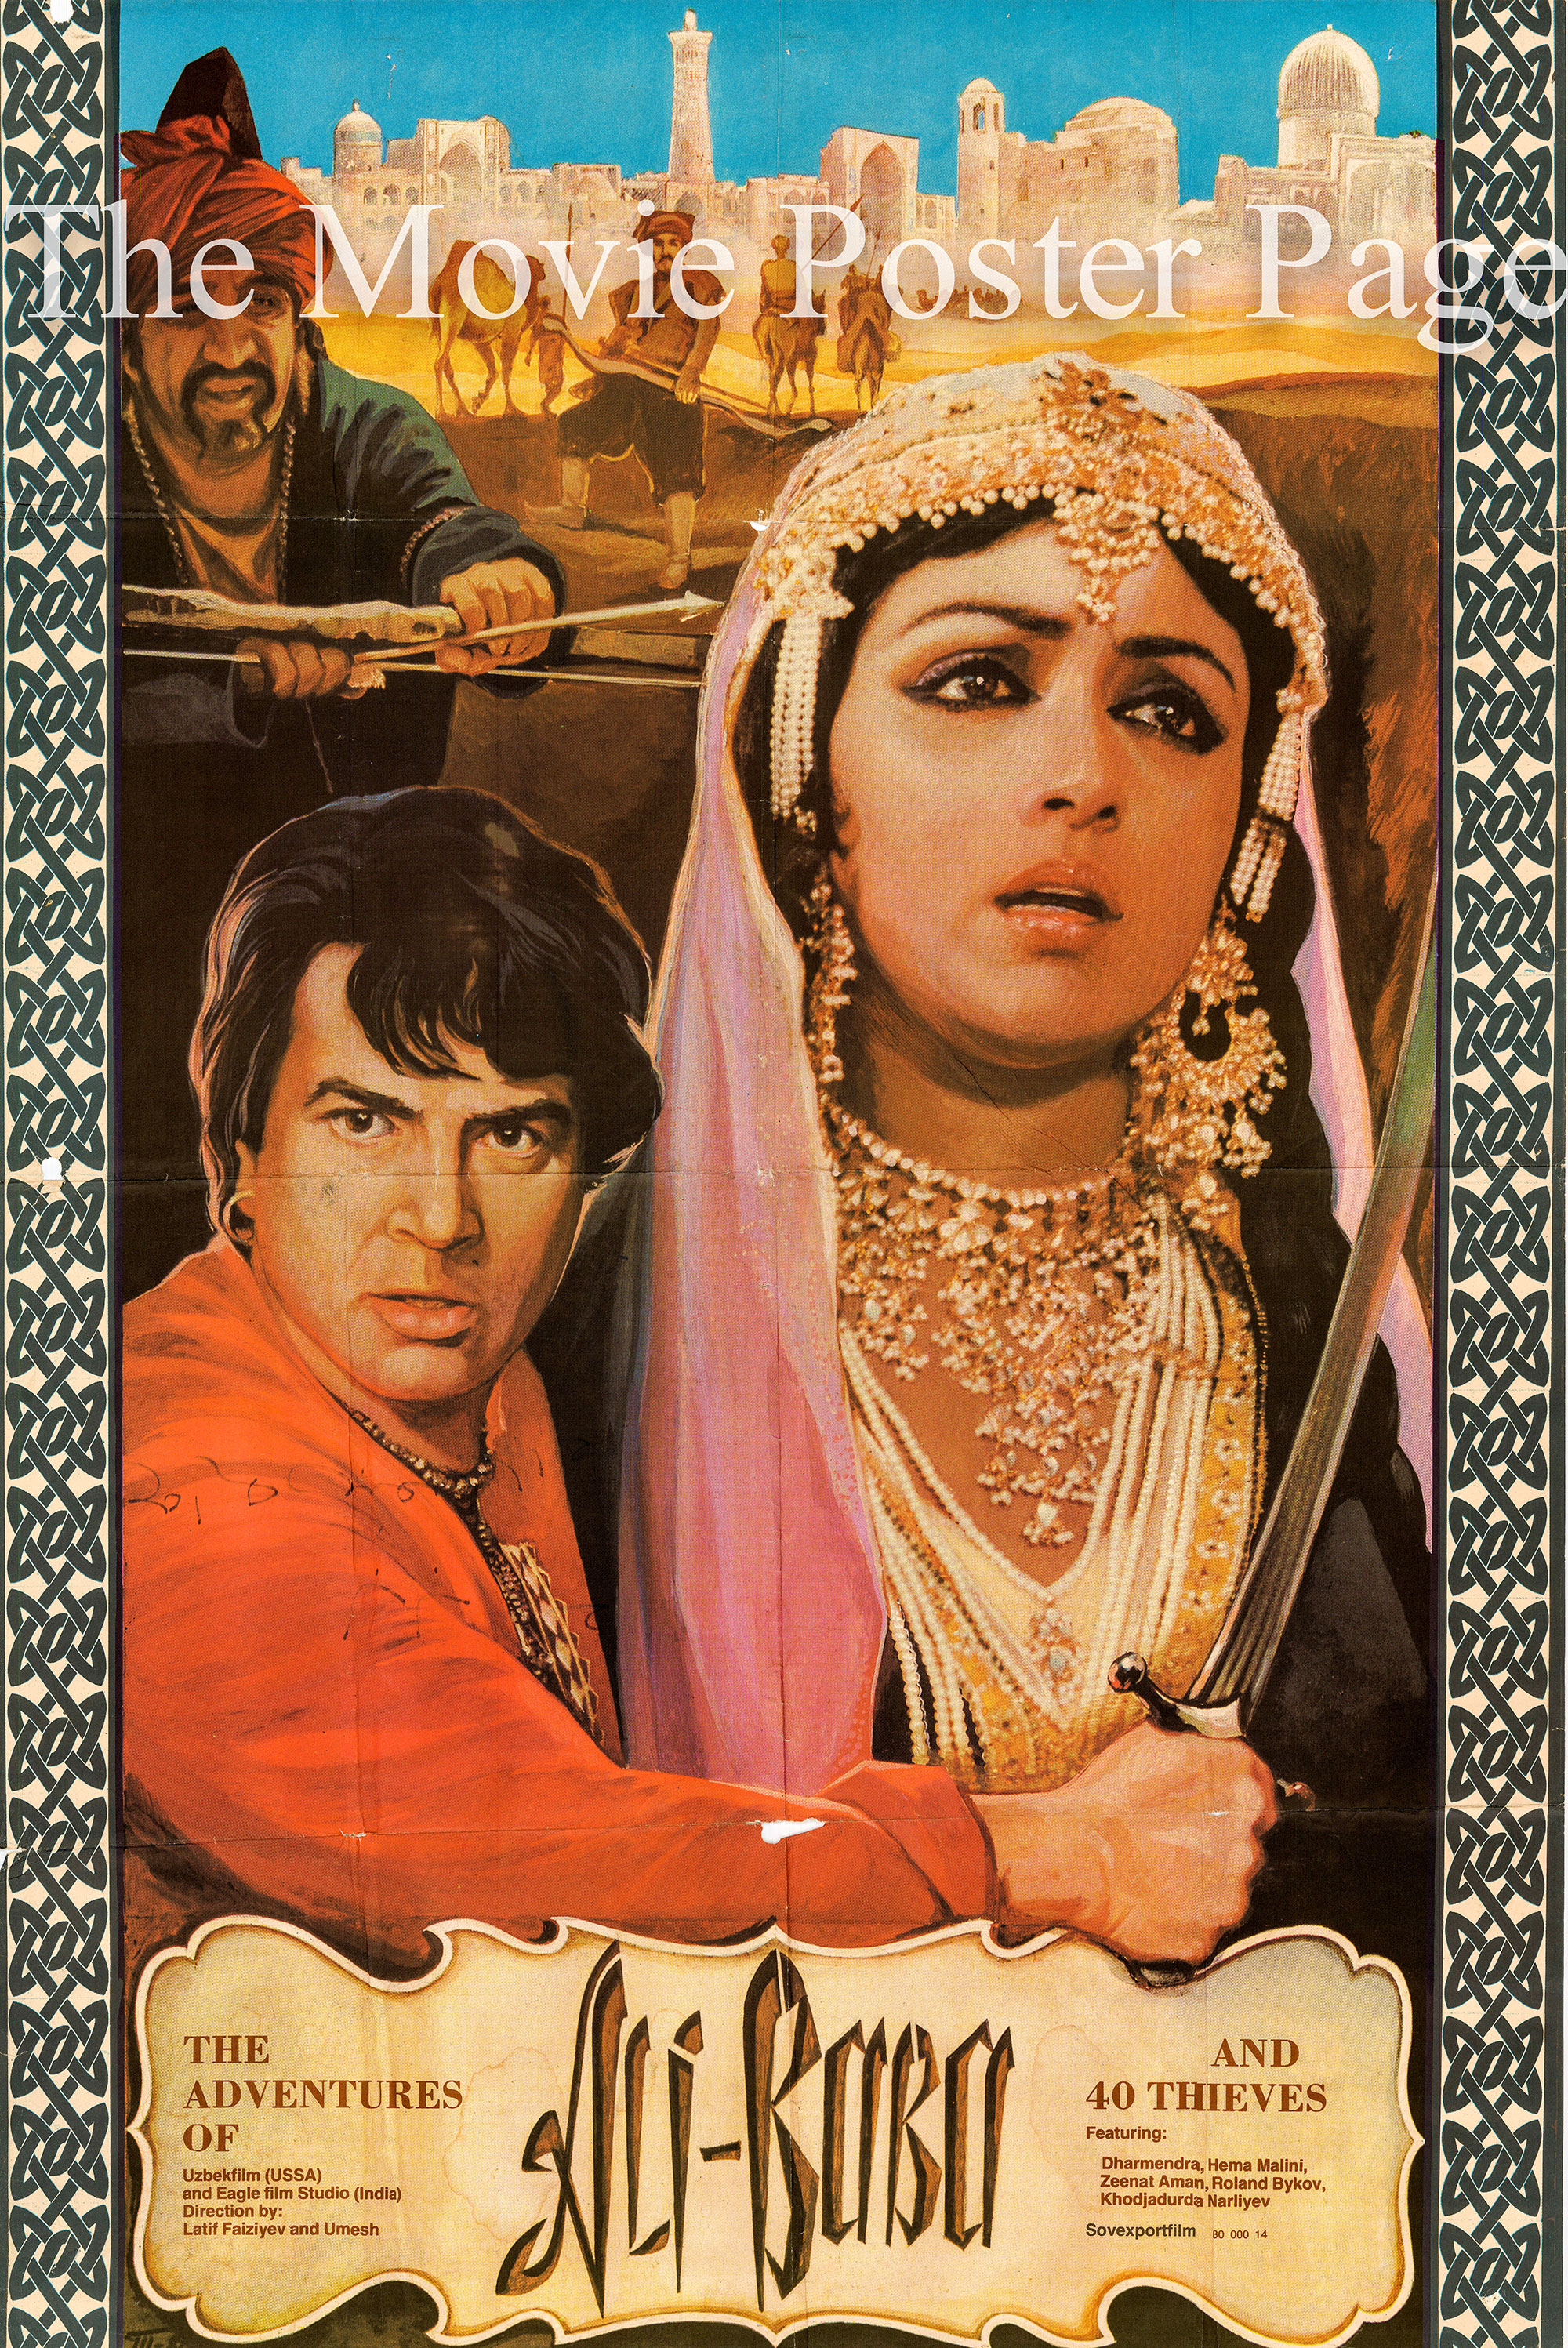 Pictured is a Soviet Export film movie poster for the 1980 Latif Faiziyev film and Umesh Mehra The Adventures of Ali Baba and the 40 Thieves (Alibaba Aur Chalis Chor) starring Dharmendre.